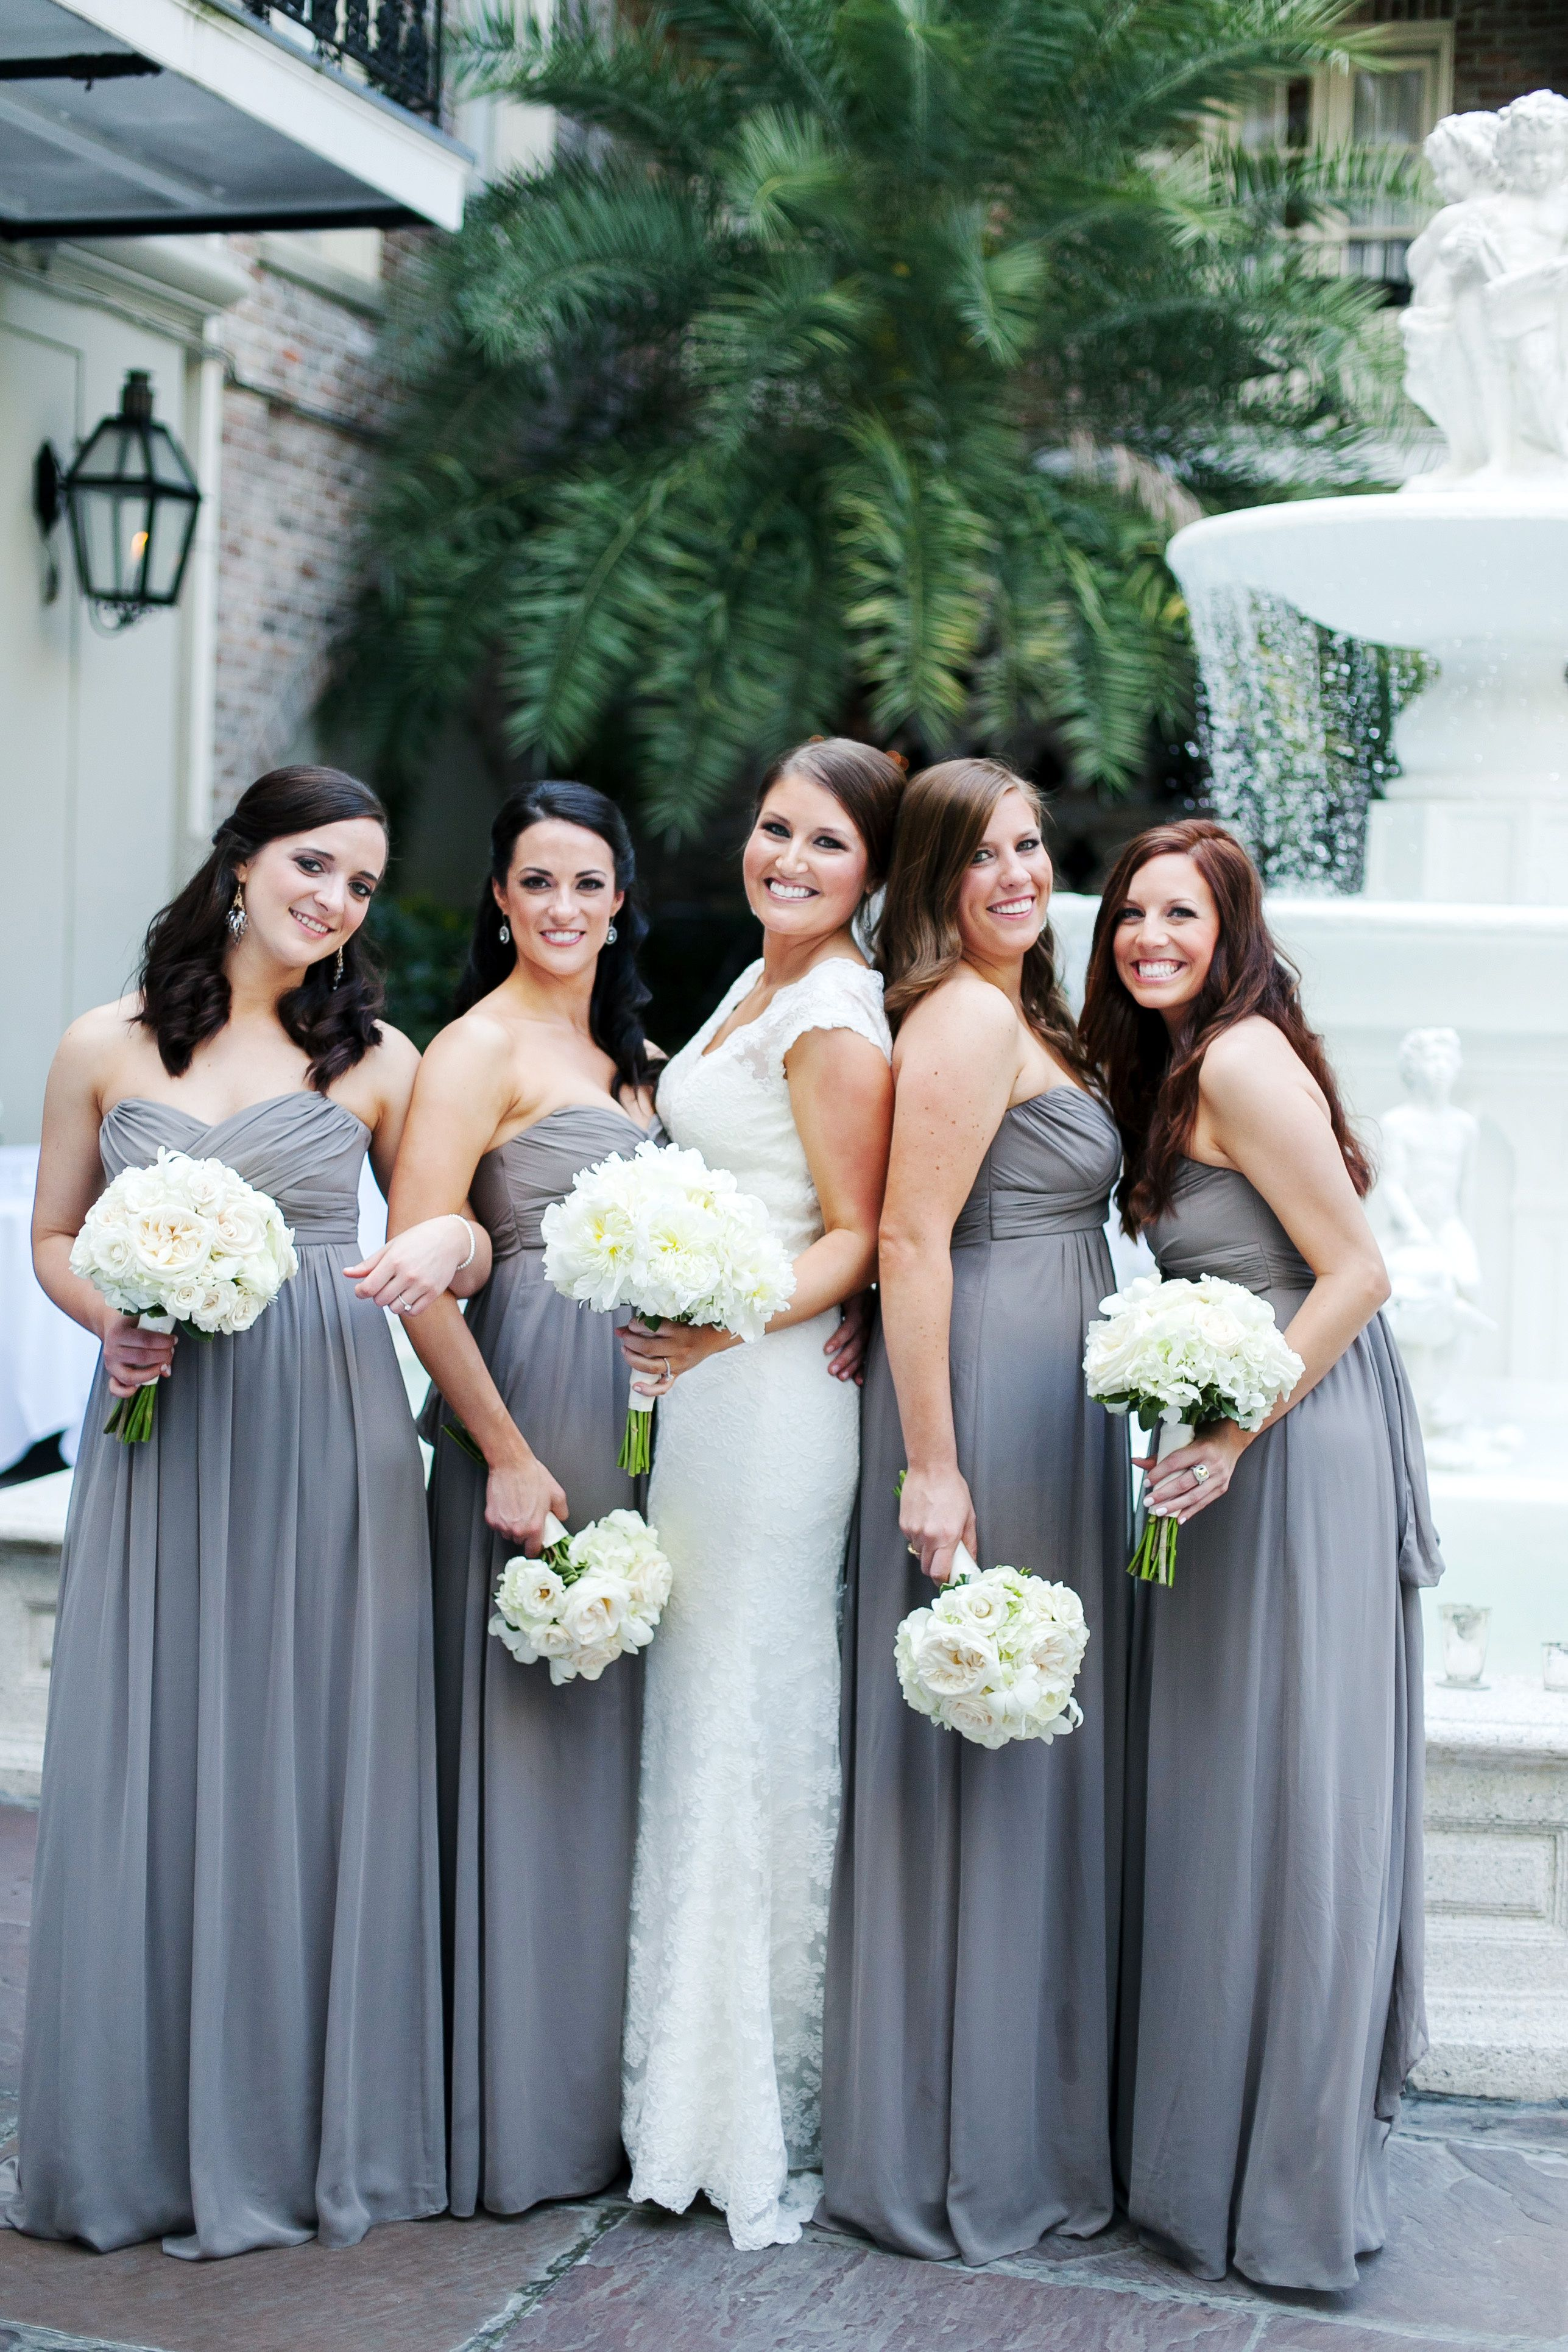 Maison dupuy courtyard weddings in new orleans strapless gray maison dupuy courtyard weddings in new orleans strapless gray empire waist bridesmaid dresses ombrellifo Images